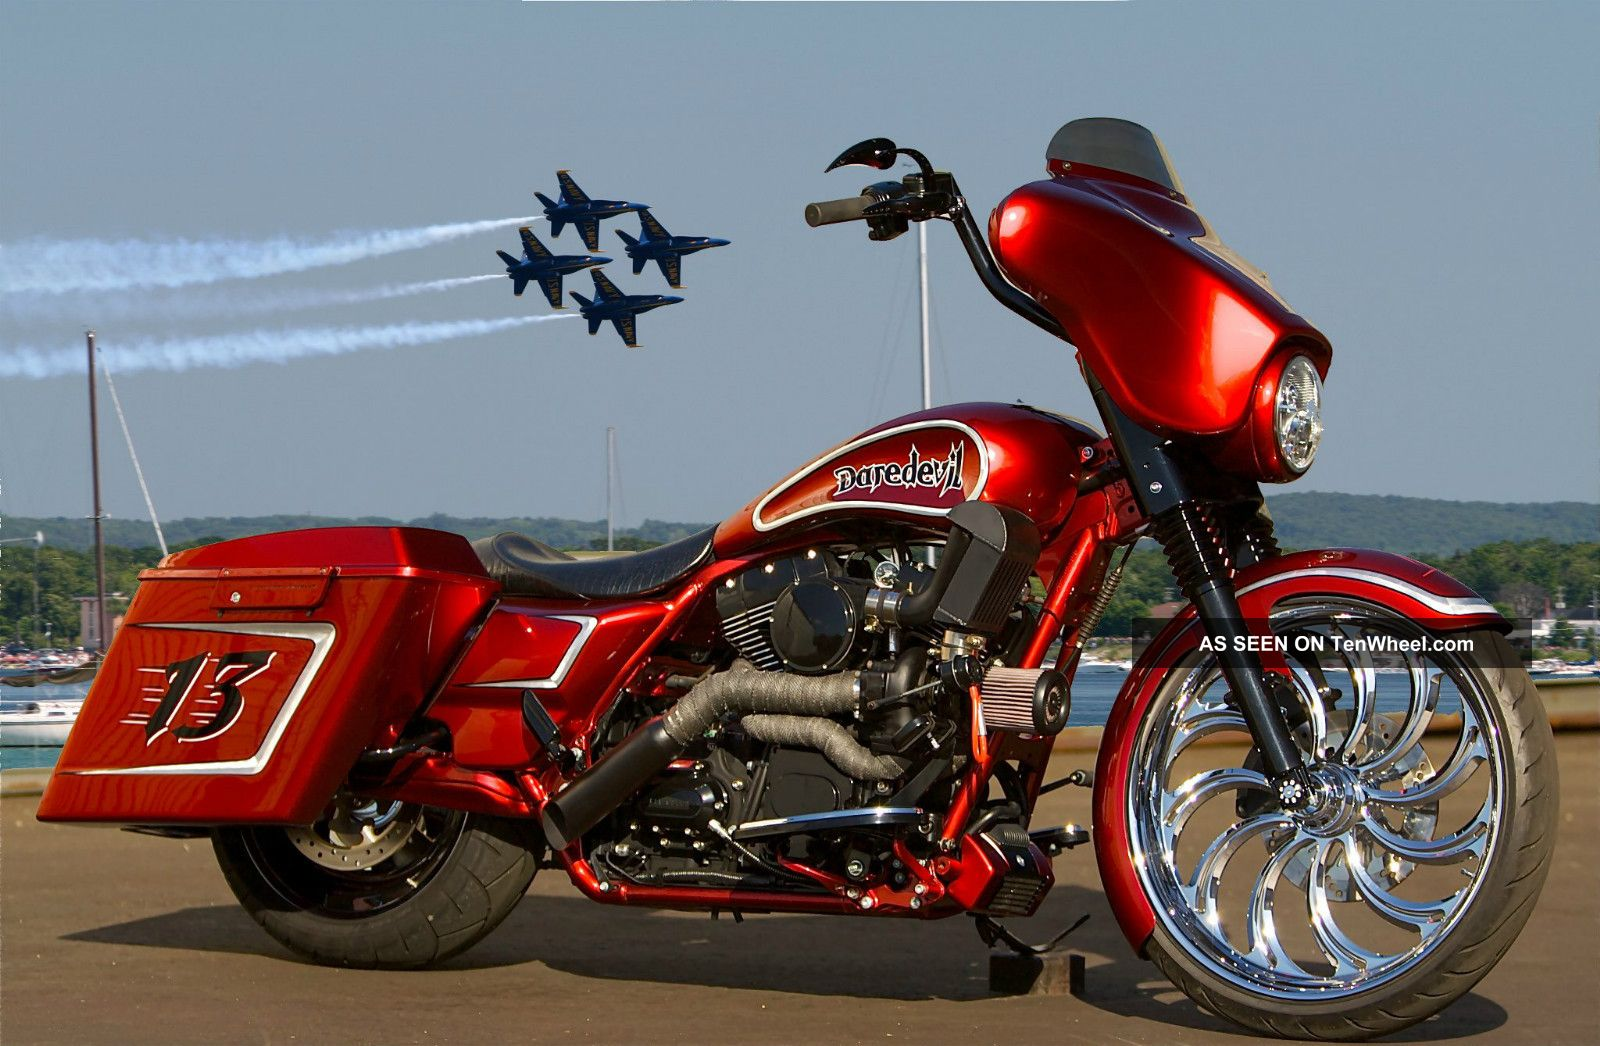 2009 harley davidson street glide turbo one of a kind featured in baggers mag. Black Bedroom Furniture Sets. Home Design Ideas